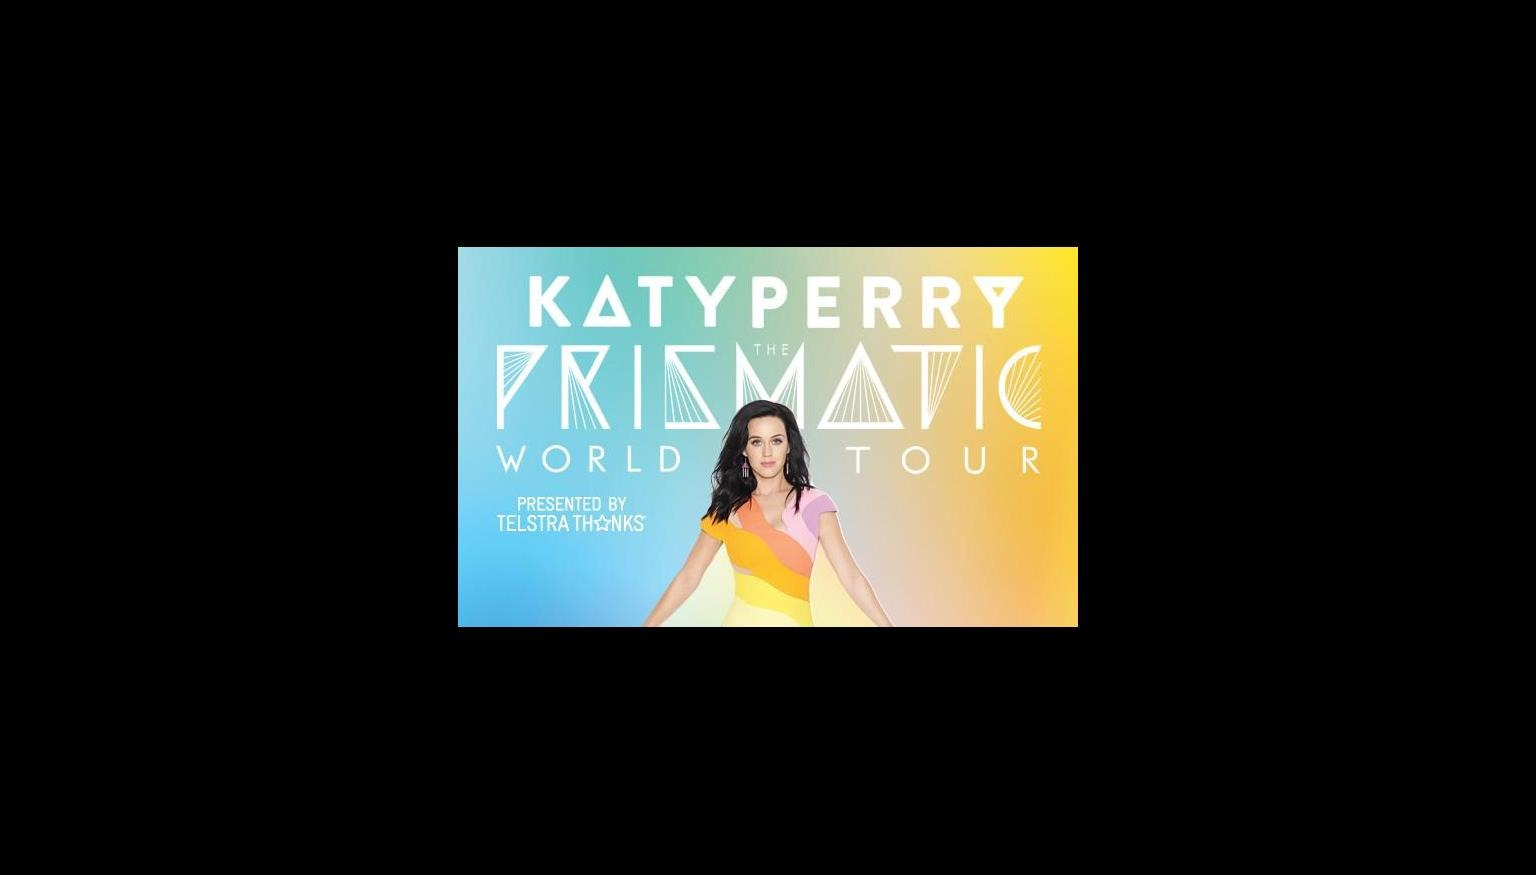 Katy perry dating in Australia